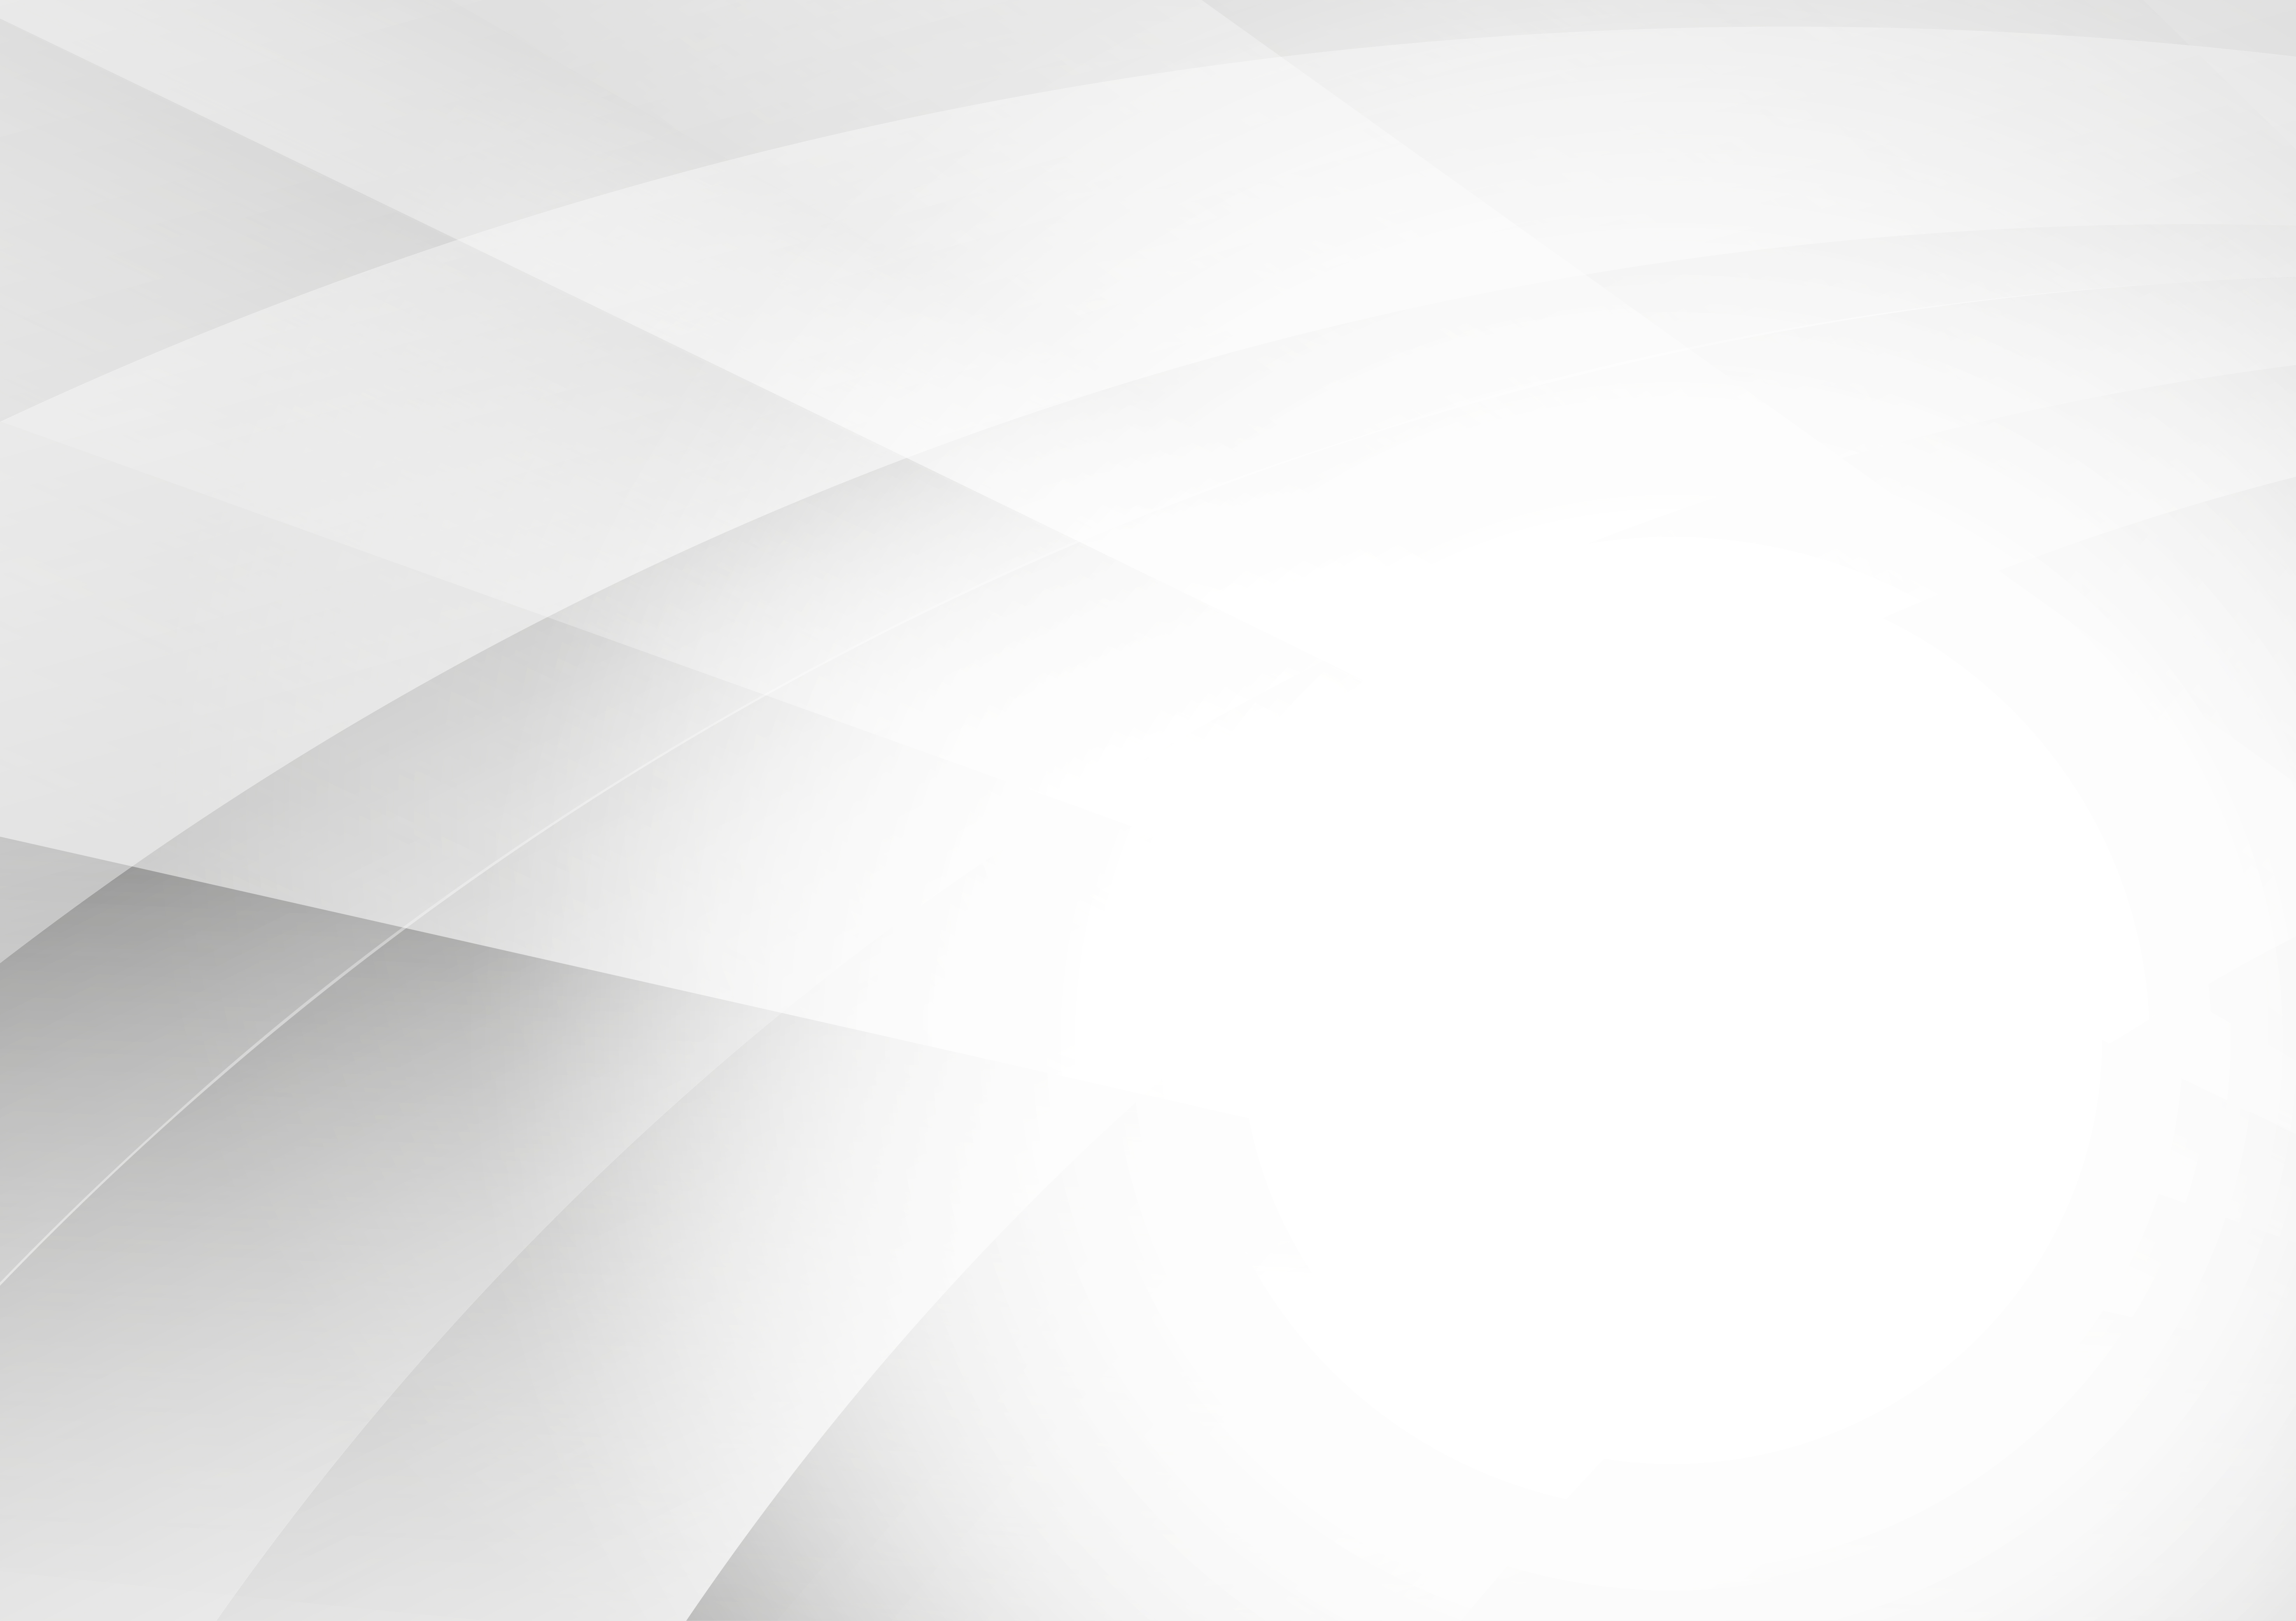 Gray And White Color Geometric Modern Design For Background